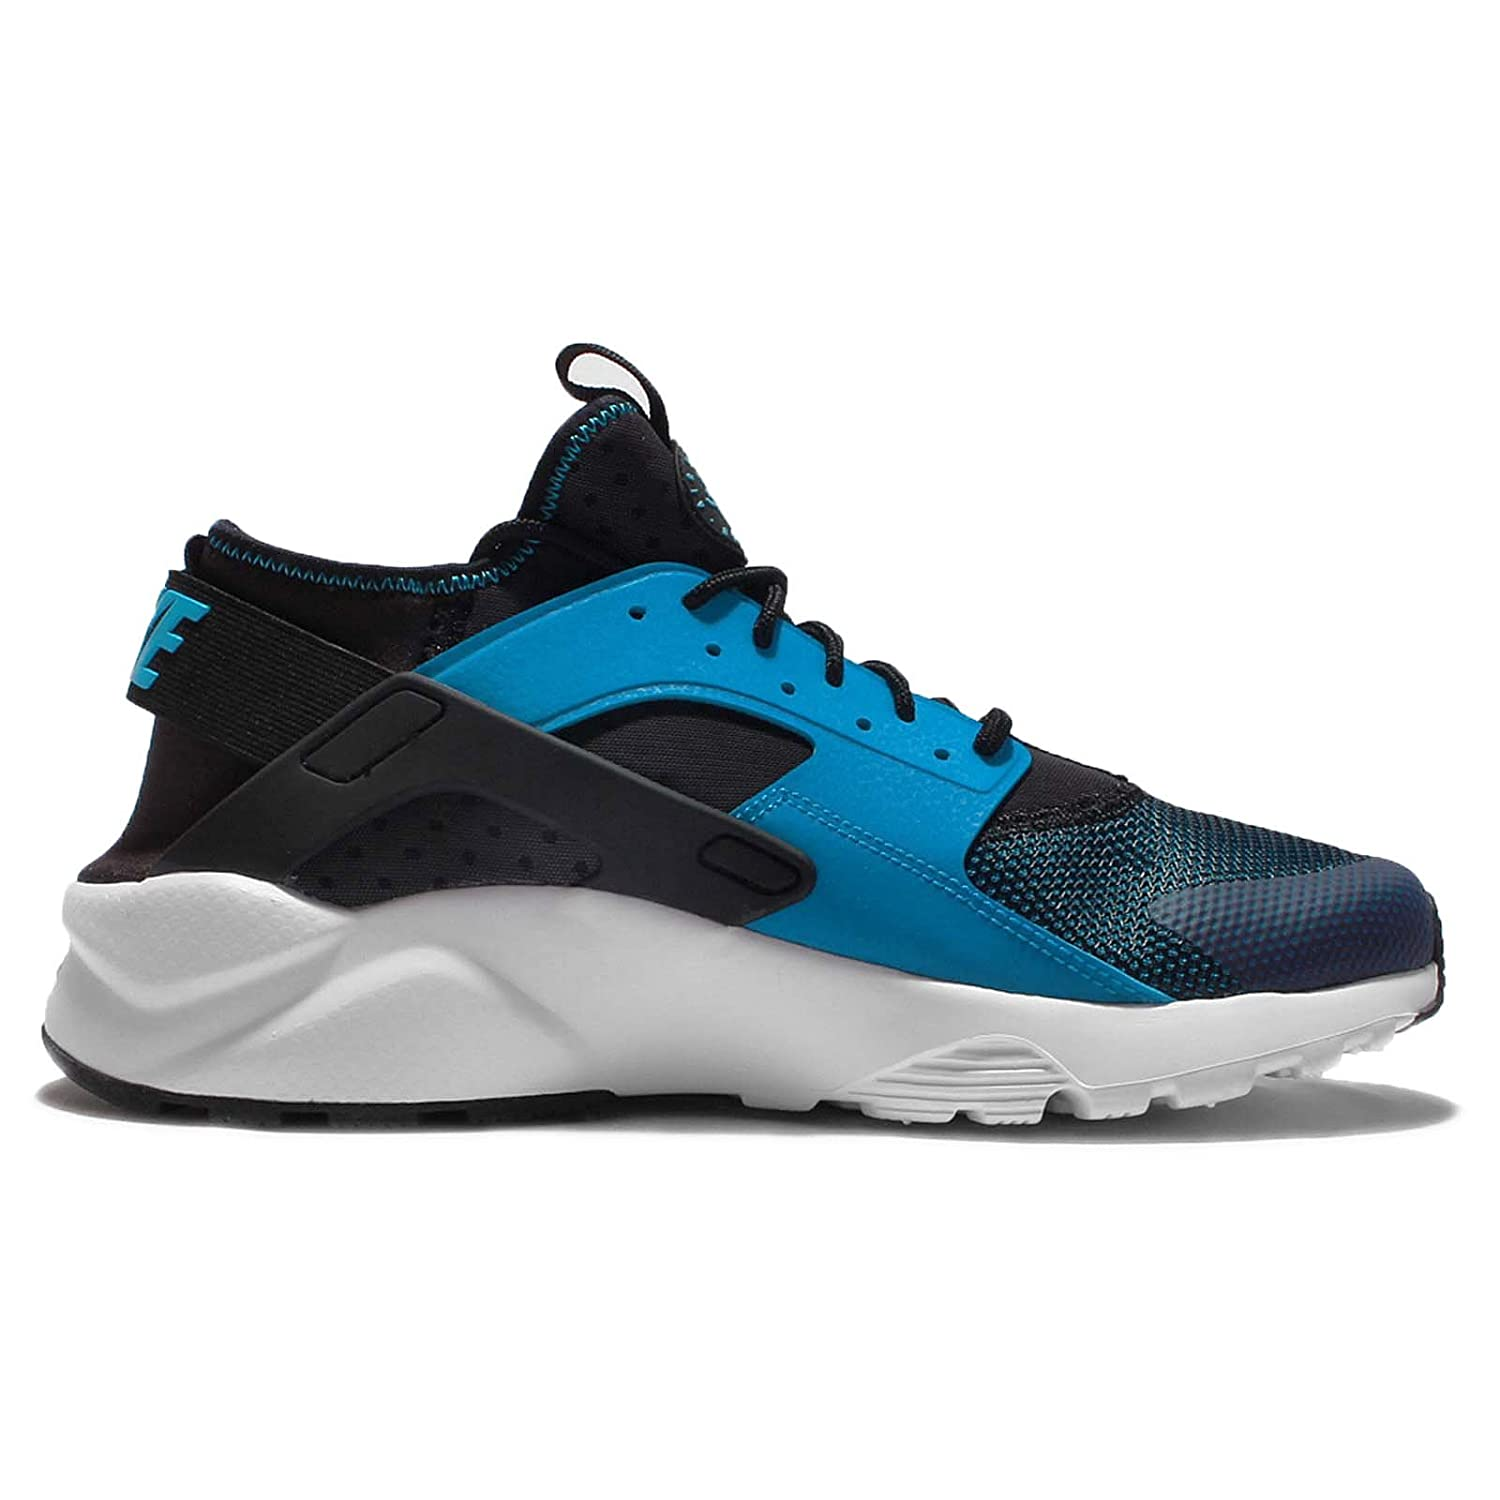 info for af597 0cfe2 Nike air Huarache Run Ultra Mens Running Trainers 819685 Sneakers Shoes (US  10, Blue Lagoon White Black 401)  Buy Online at Low Prices in India -  Amazon.in